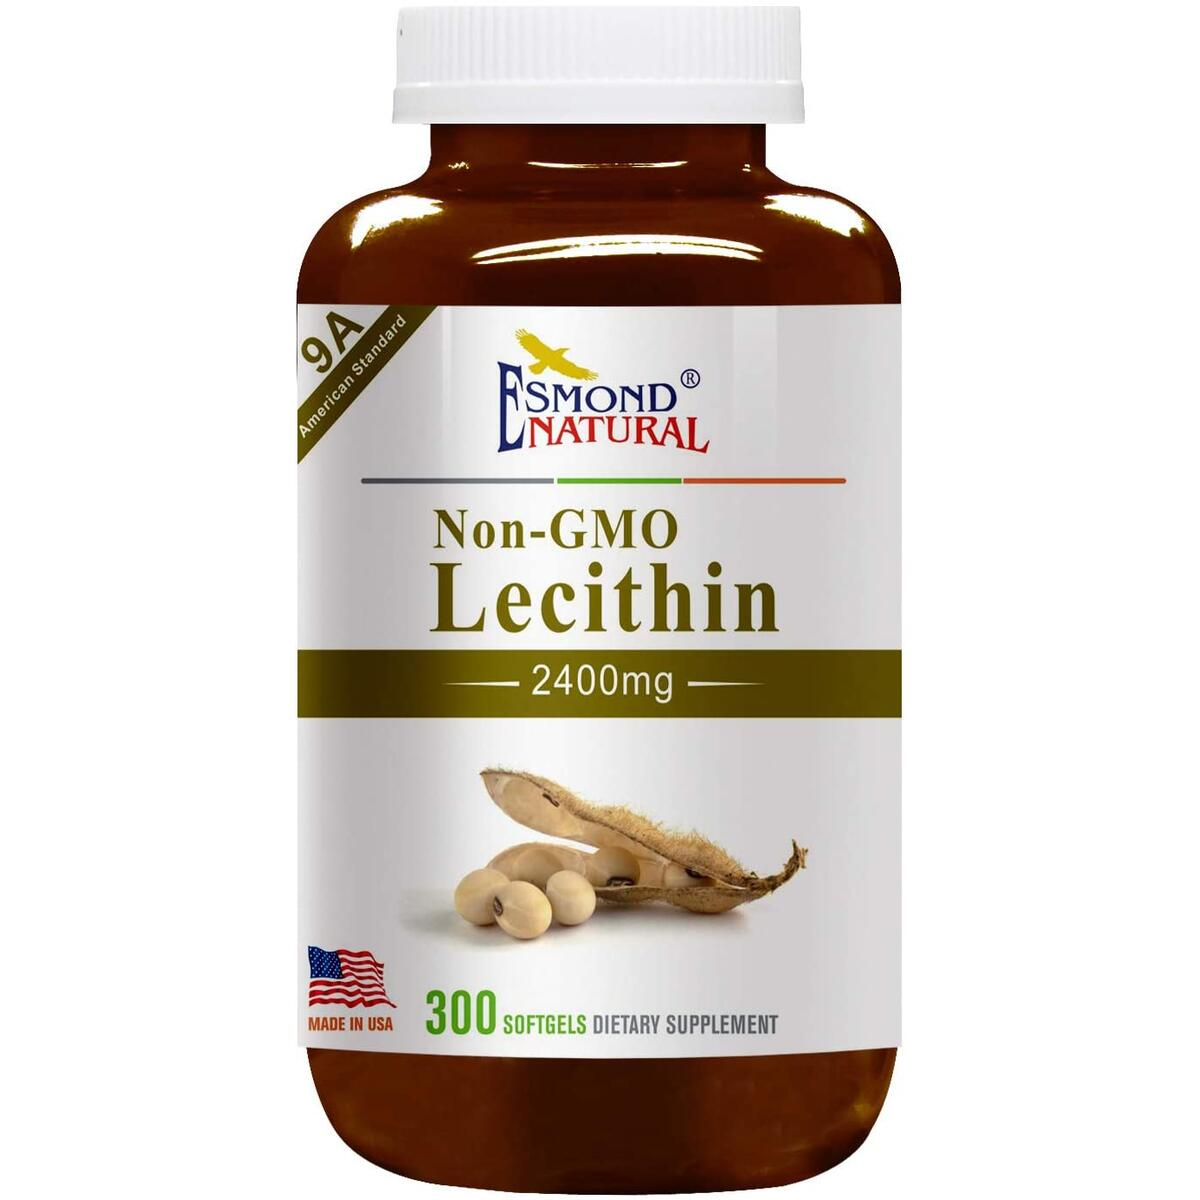 Esmond Natural: Lecithin (Non-GMO), GMP, Natural Product Assn Certified, Made in USA-2400mg, 300 Softgels